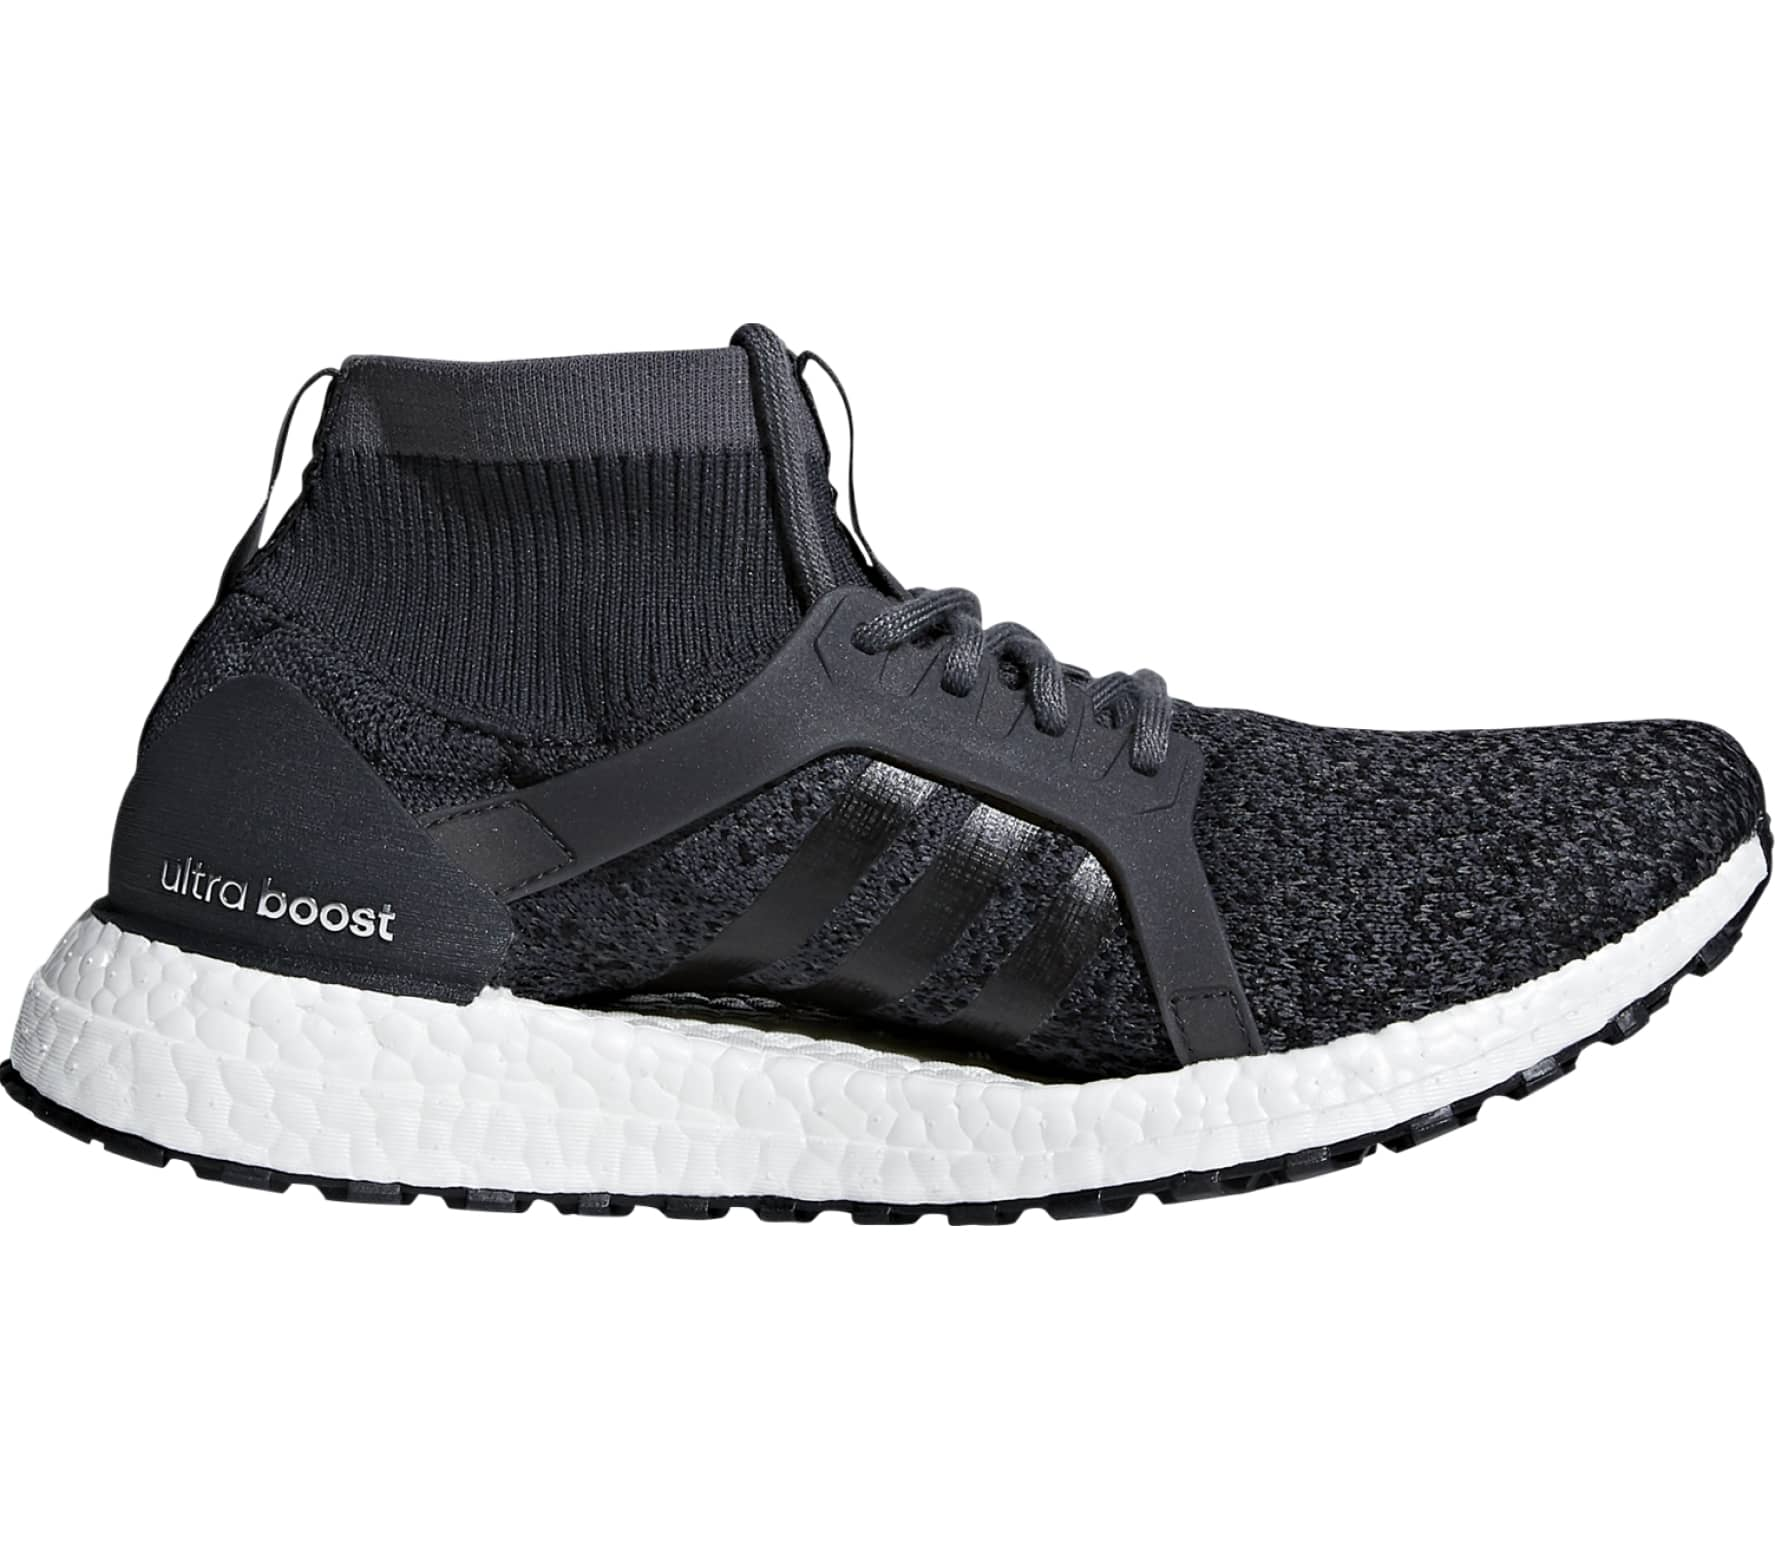 new product f4bc6 d192e Adidas - UltraBOOST X All Terrain Mujer Zapatos para correr (negro)